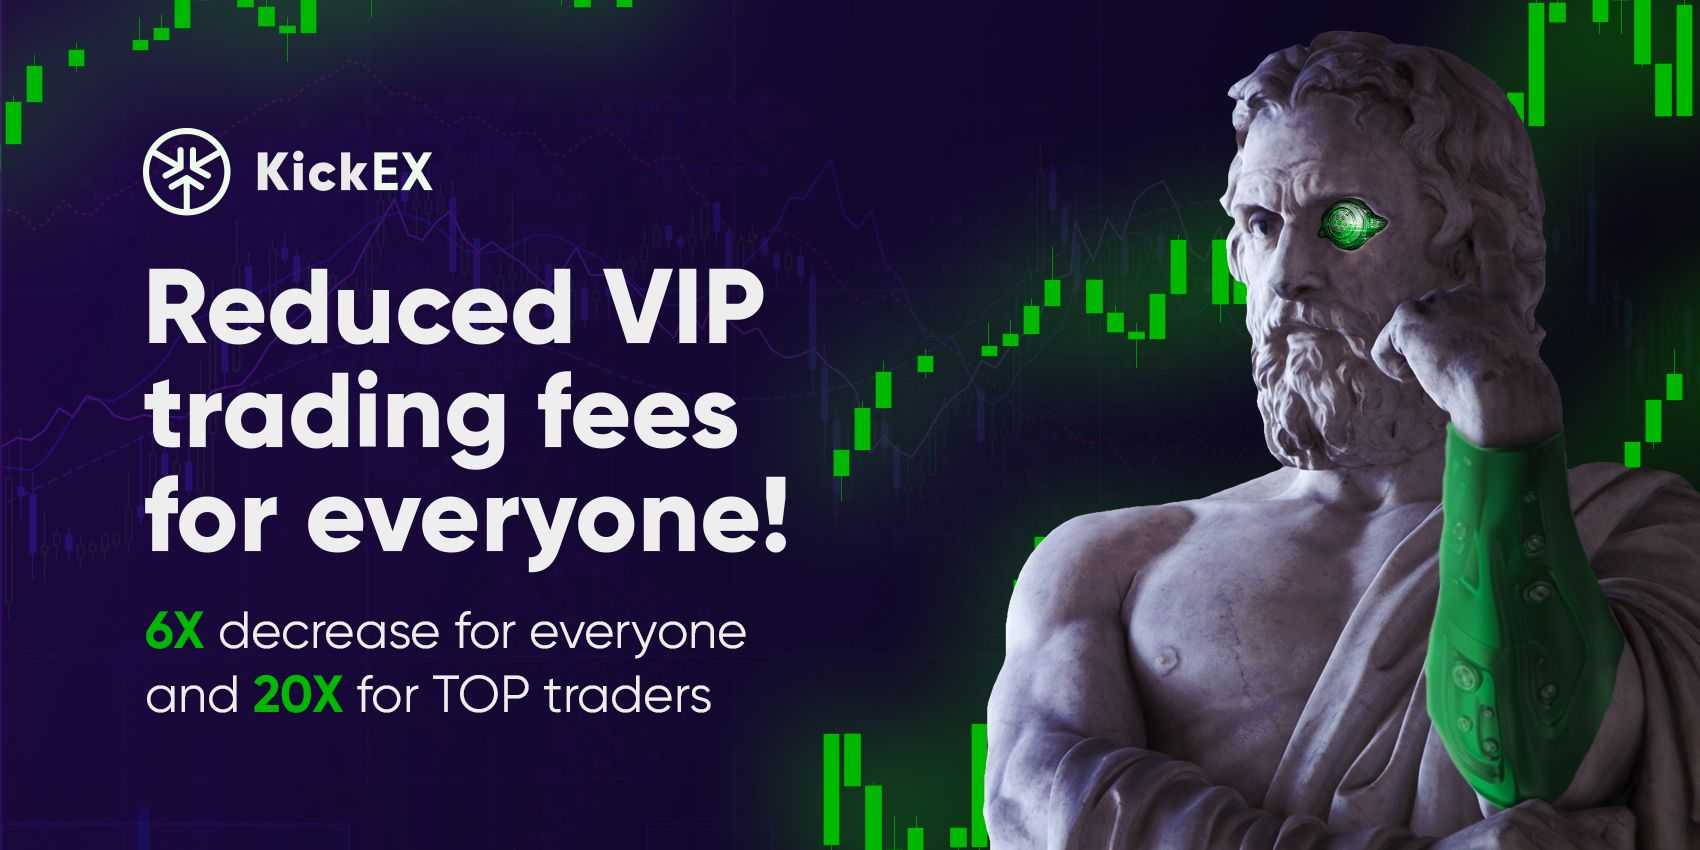 /announcement-kickex-now-offers-reduced-vip-trading-fees-for-everyone-bw183wr8 feature image